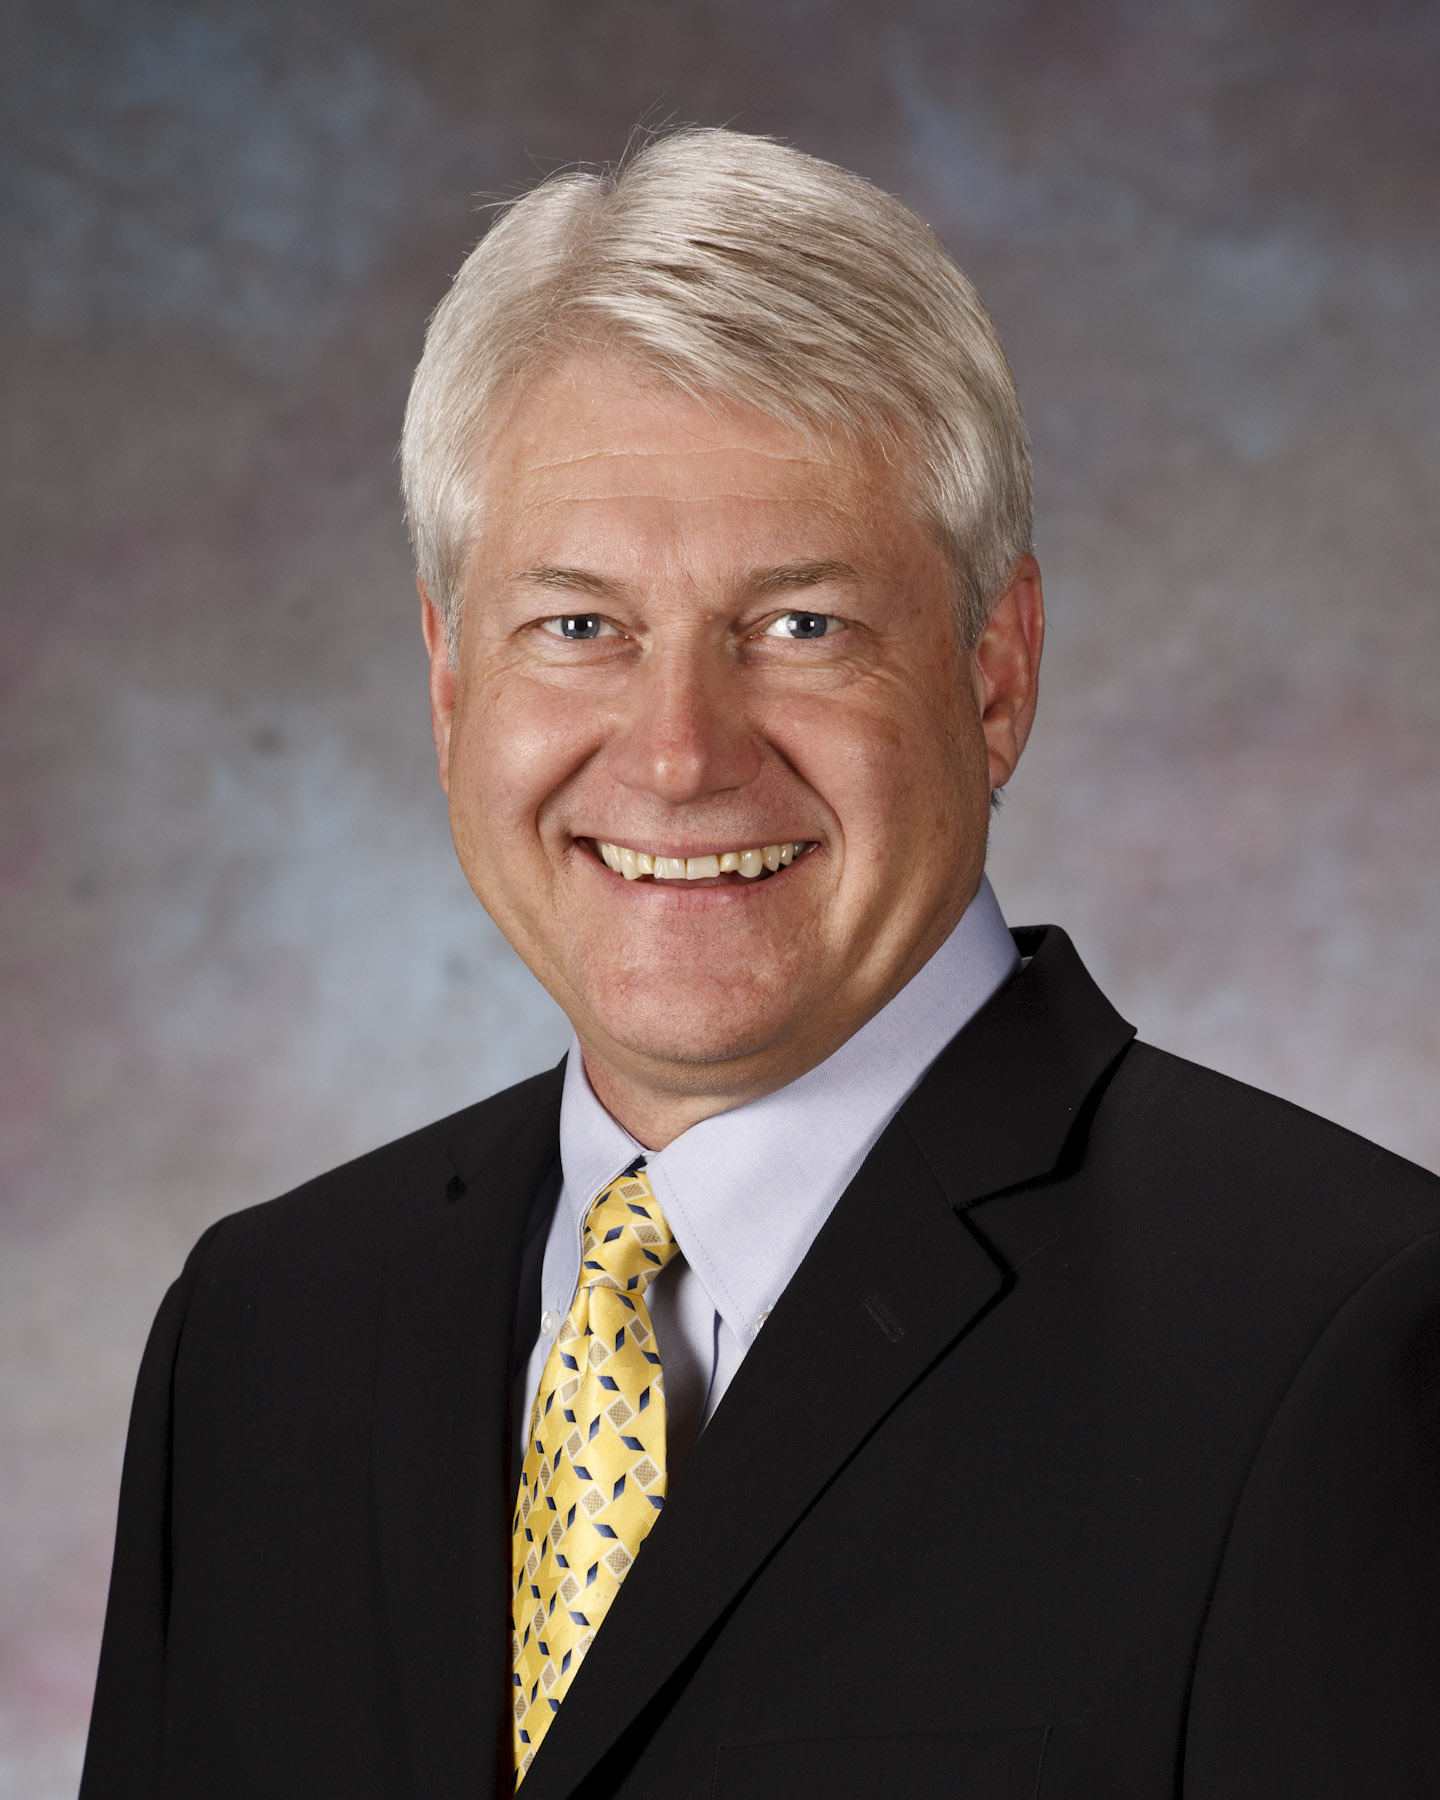 Rodney J. Sailor has been named executive vice president and chief financial officer for Enable Midstream Partners, LP. (Photo: Business Wire)